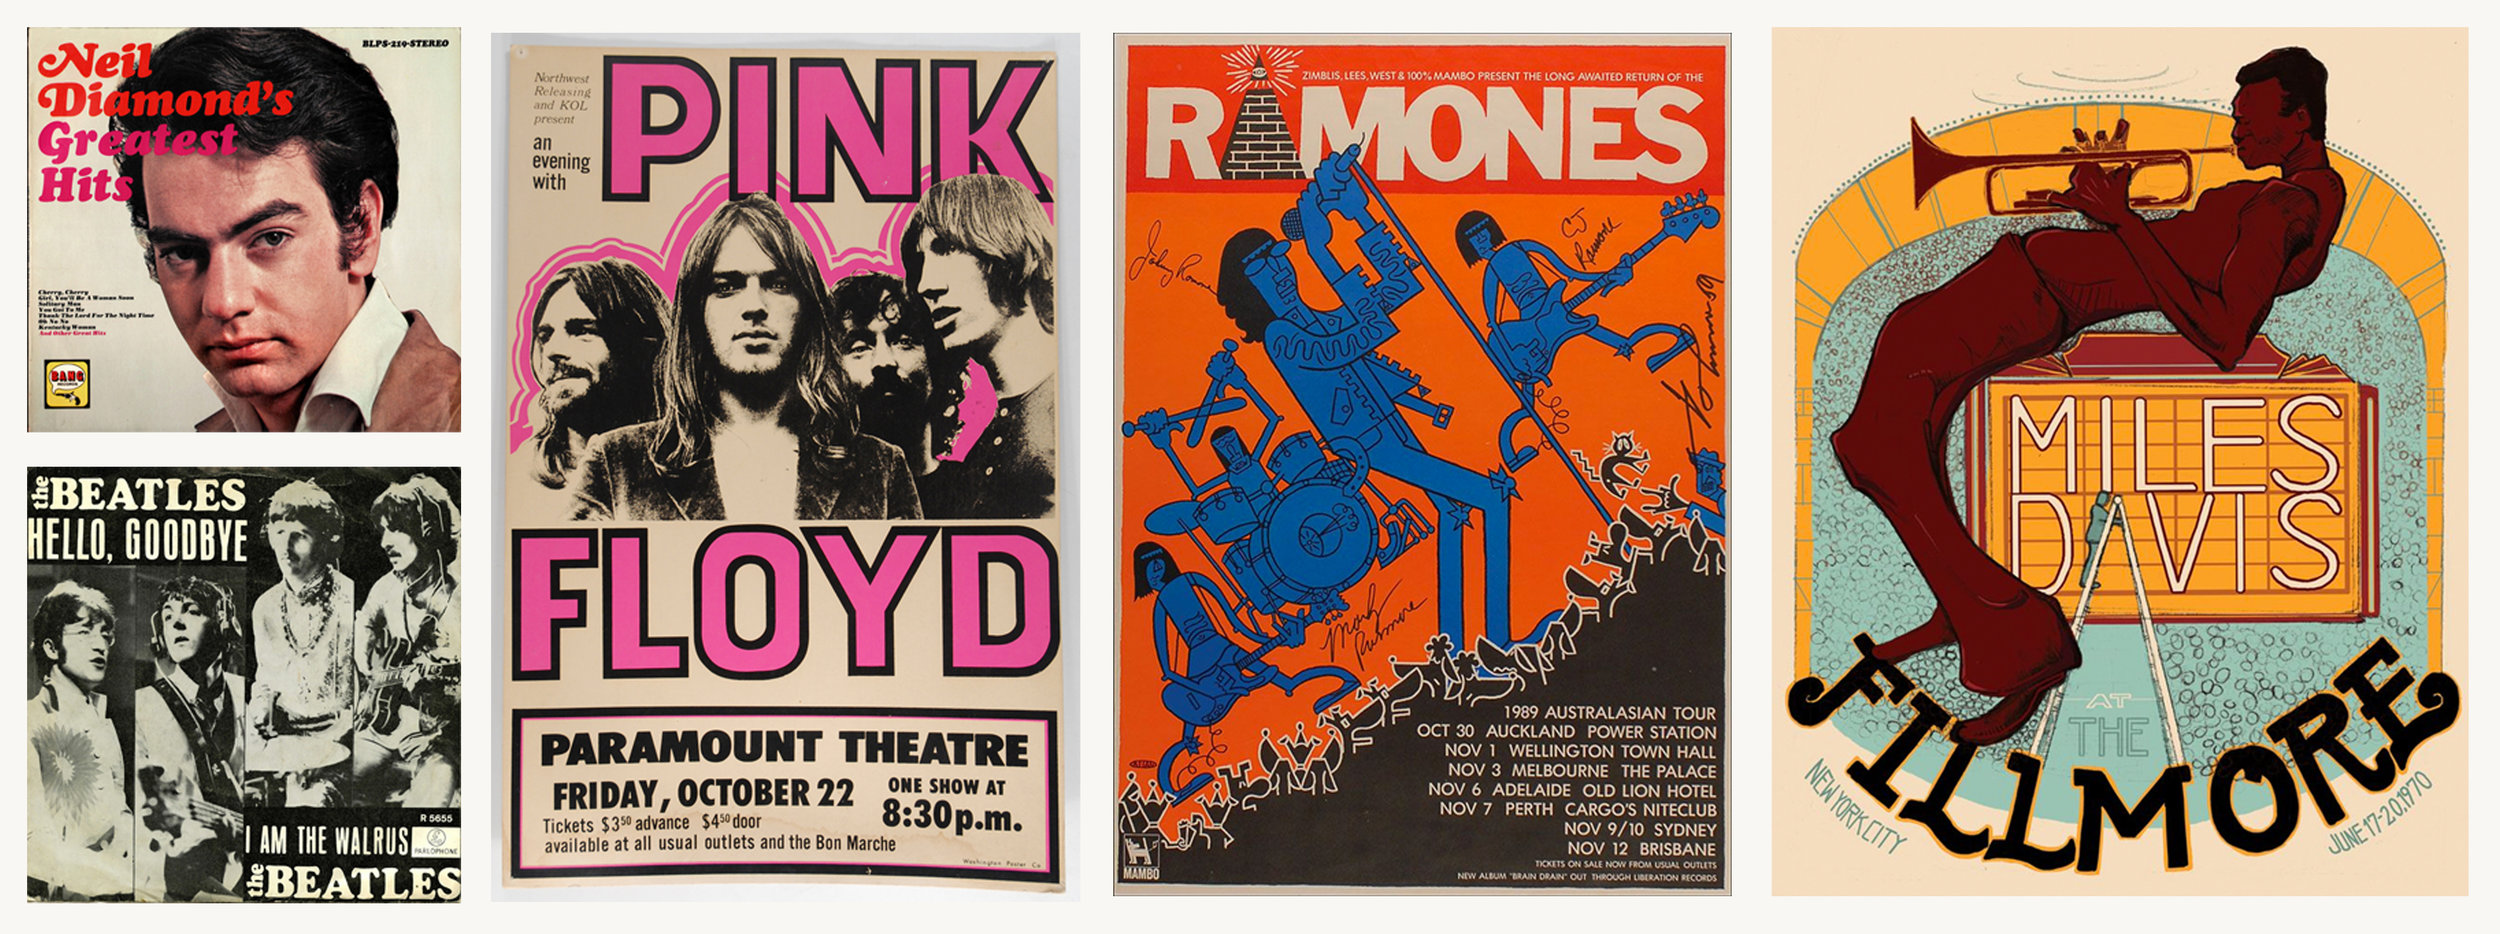 We took a lot of inspiration from 60's - 80's vinyl art and band posters. We were especially drawn to the bright block colours, fun typography and energetic feel.